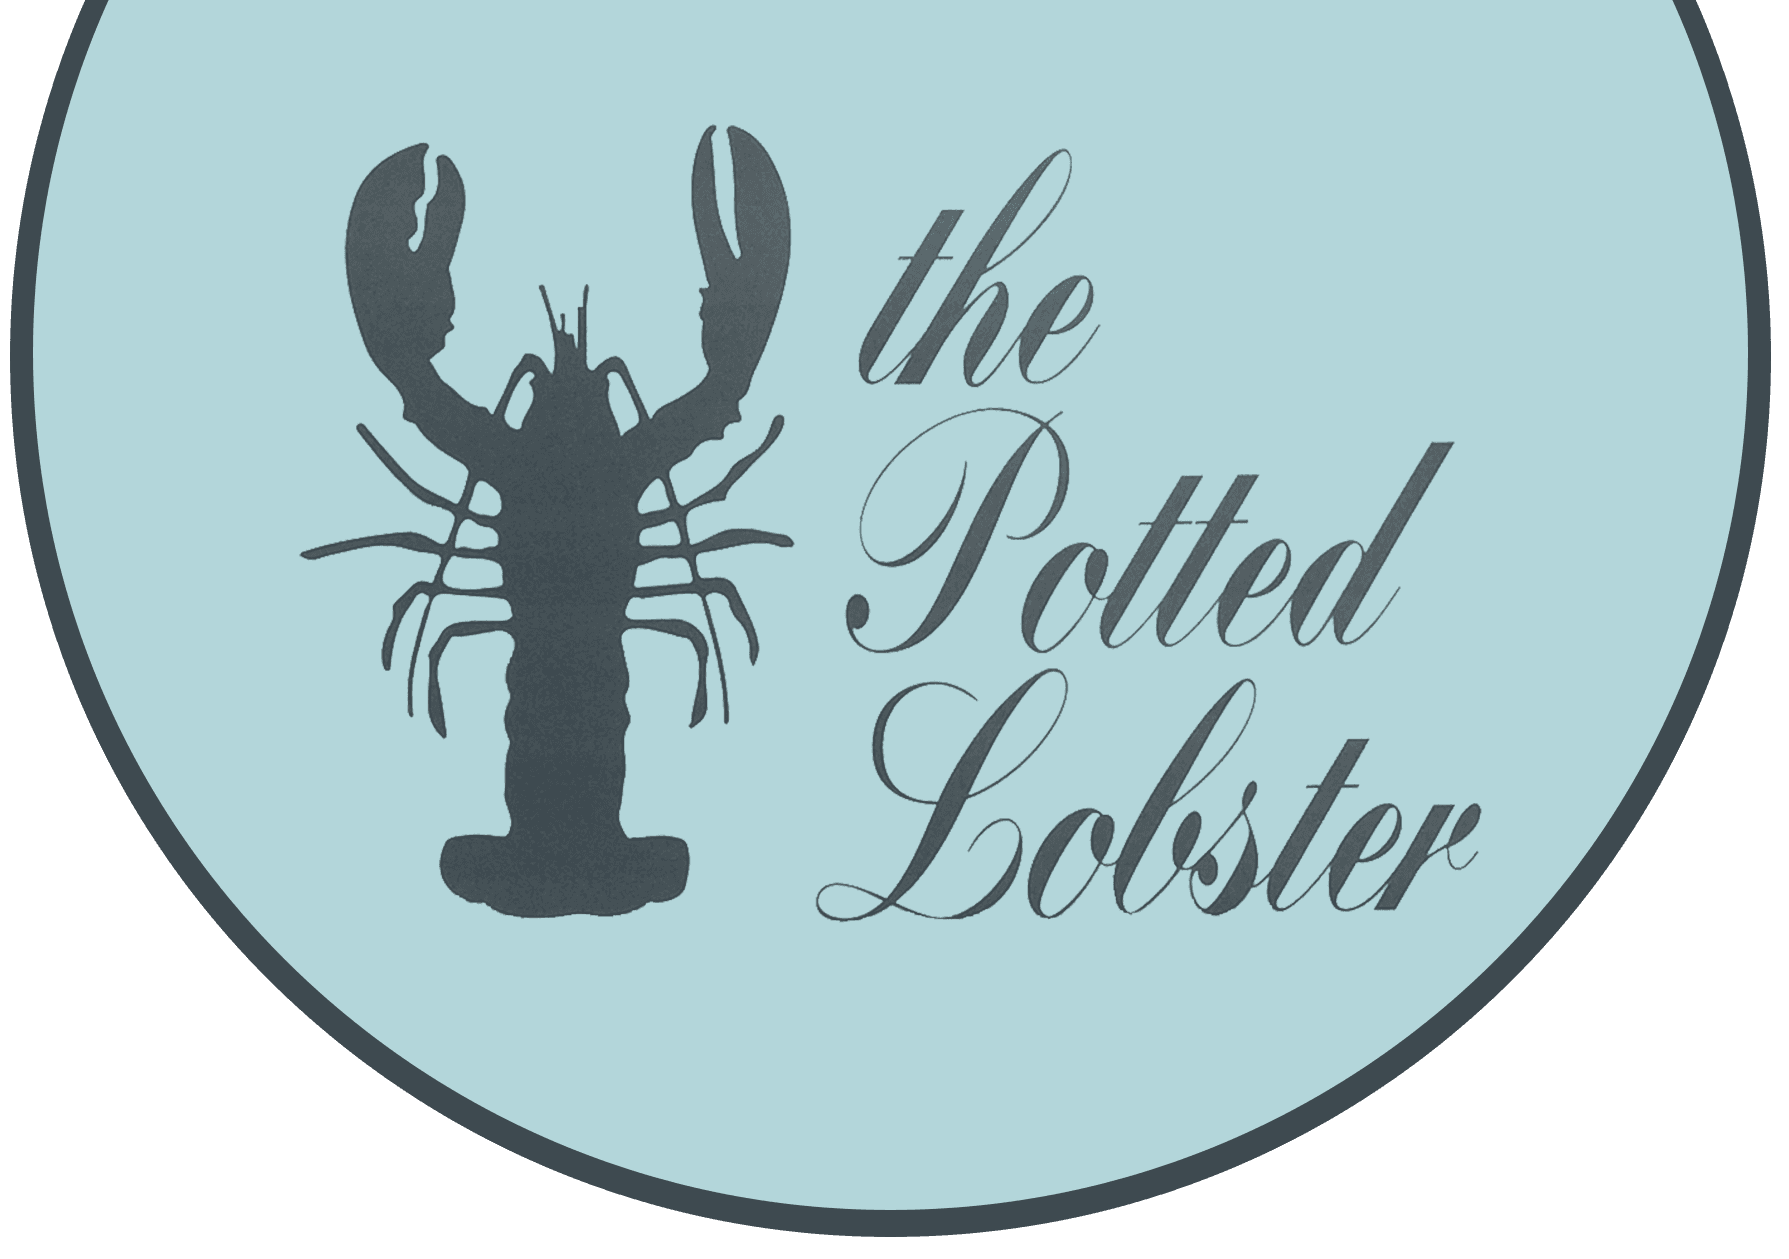 The Potted Lobster logo